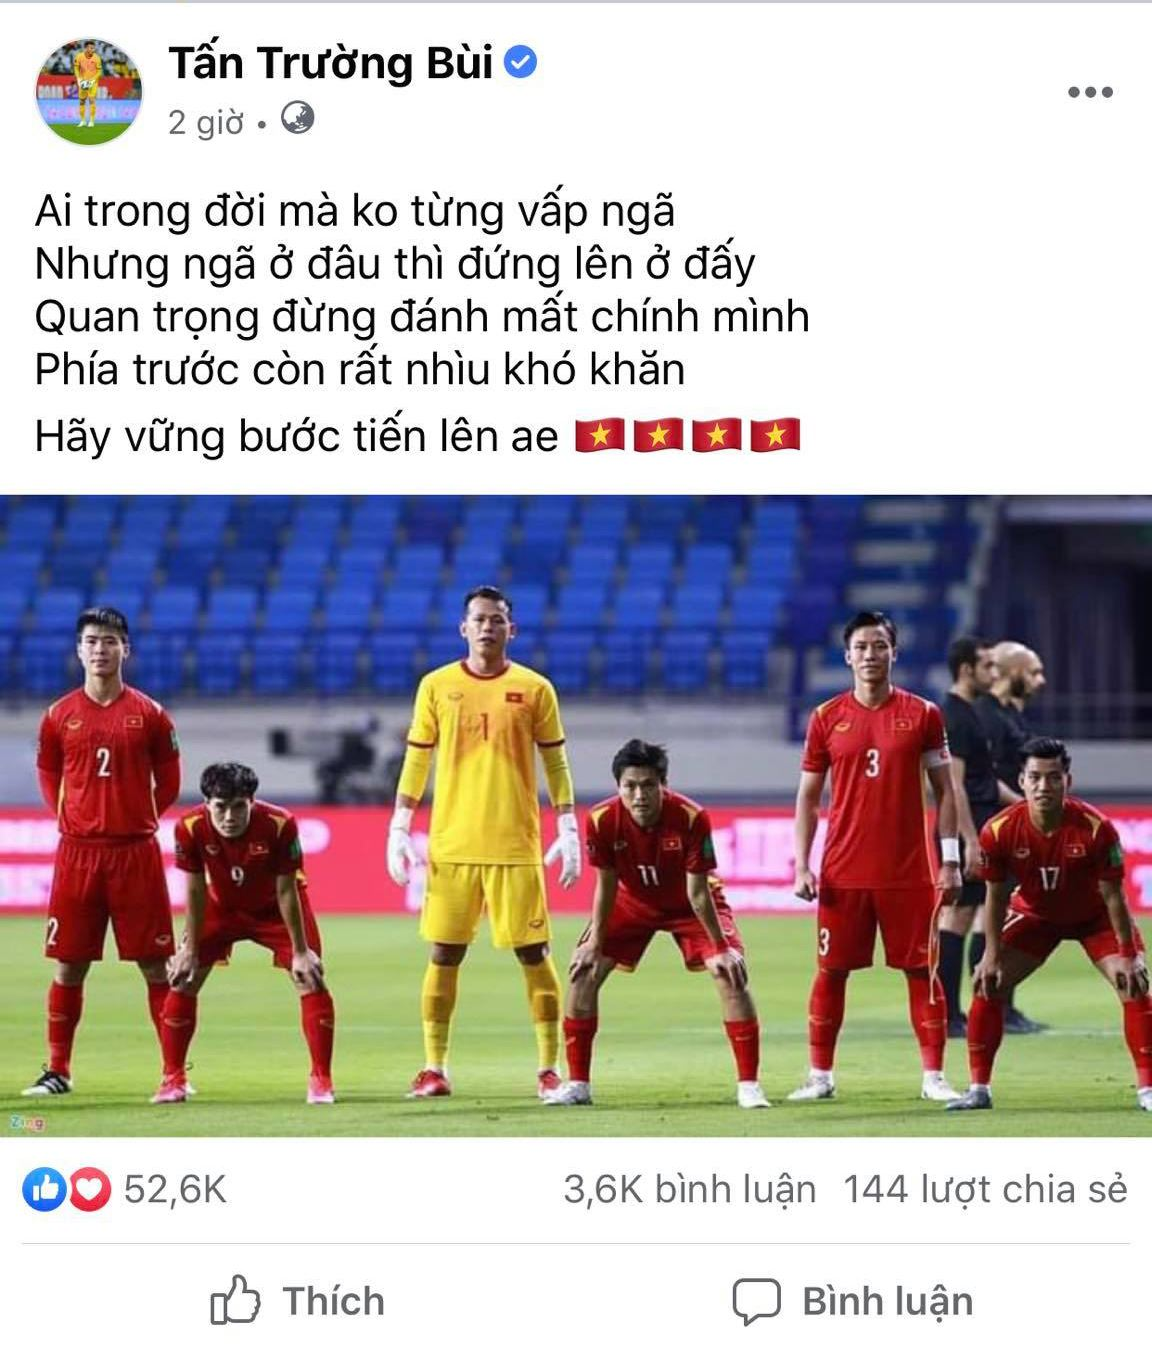 Attacked by aggressive netizens after the Vietnam - China match, goalkeeper Tan Truong officially spoke up 1